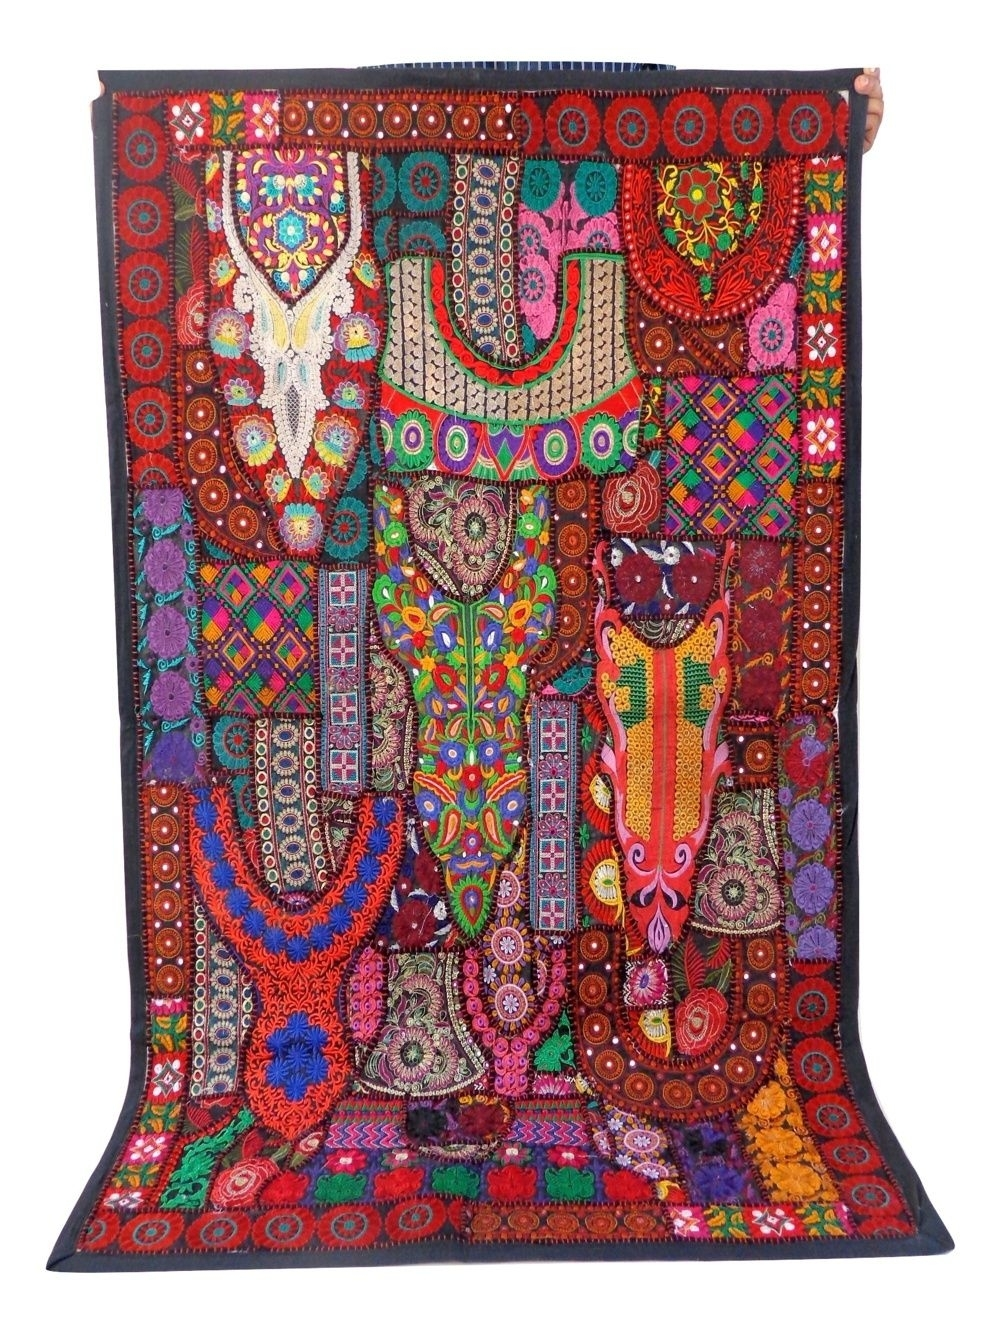 Designer Vintage Embroidered Patchwork Tapestry – Boho Hippie Wall Regarding Most Current Indian Fabric Wall Art (View 3 of 15)